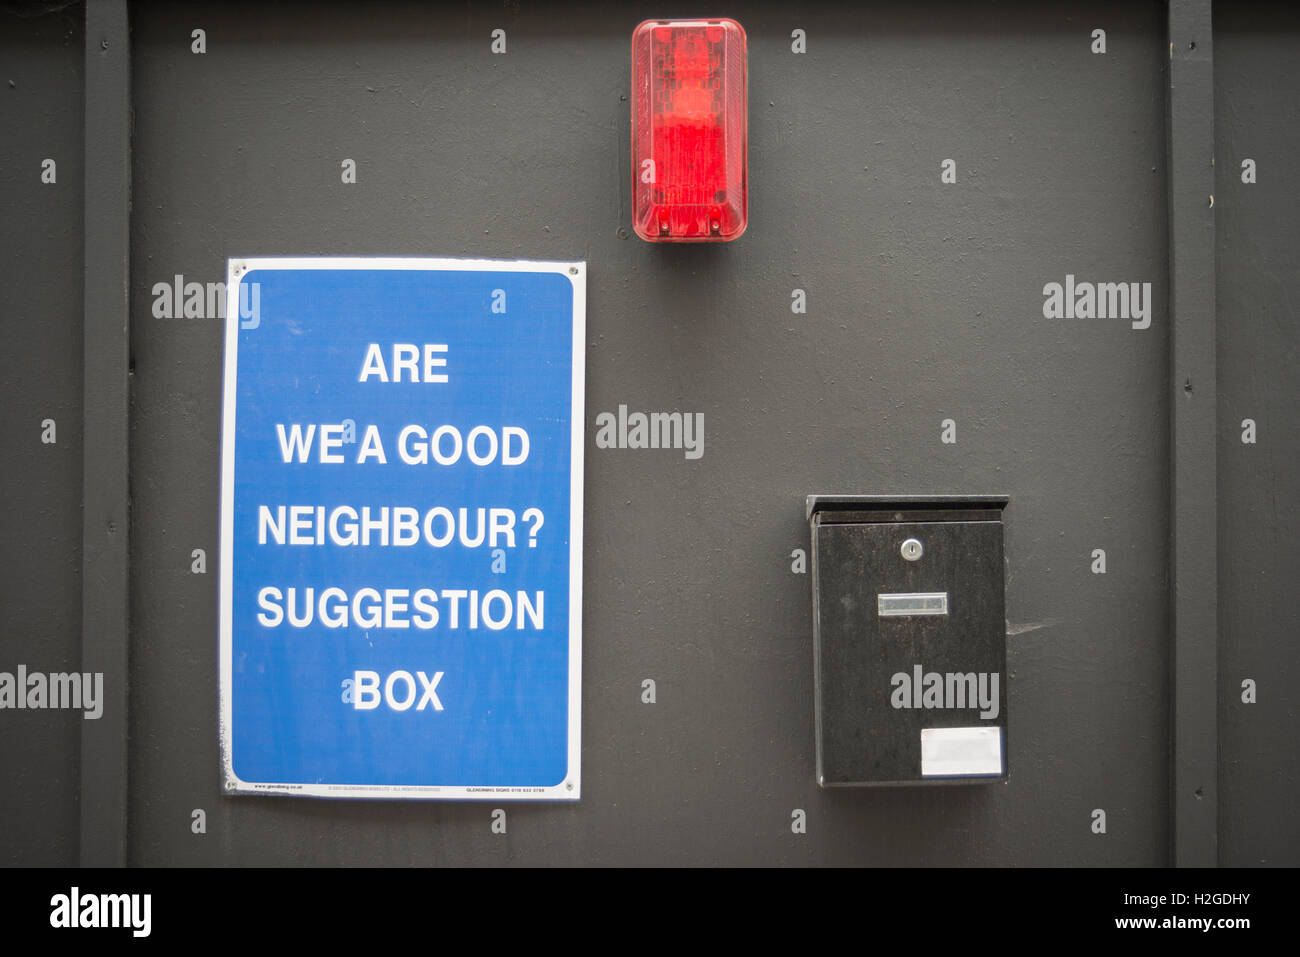 are we a good neighbour? suggestion box on the wall of a building site in London - Stock Image